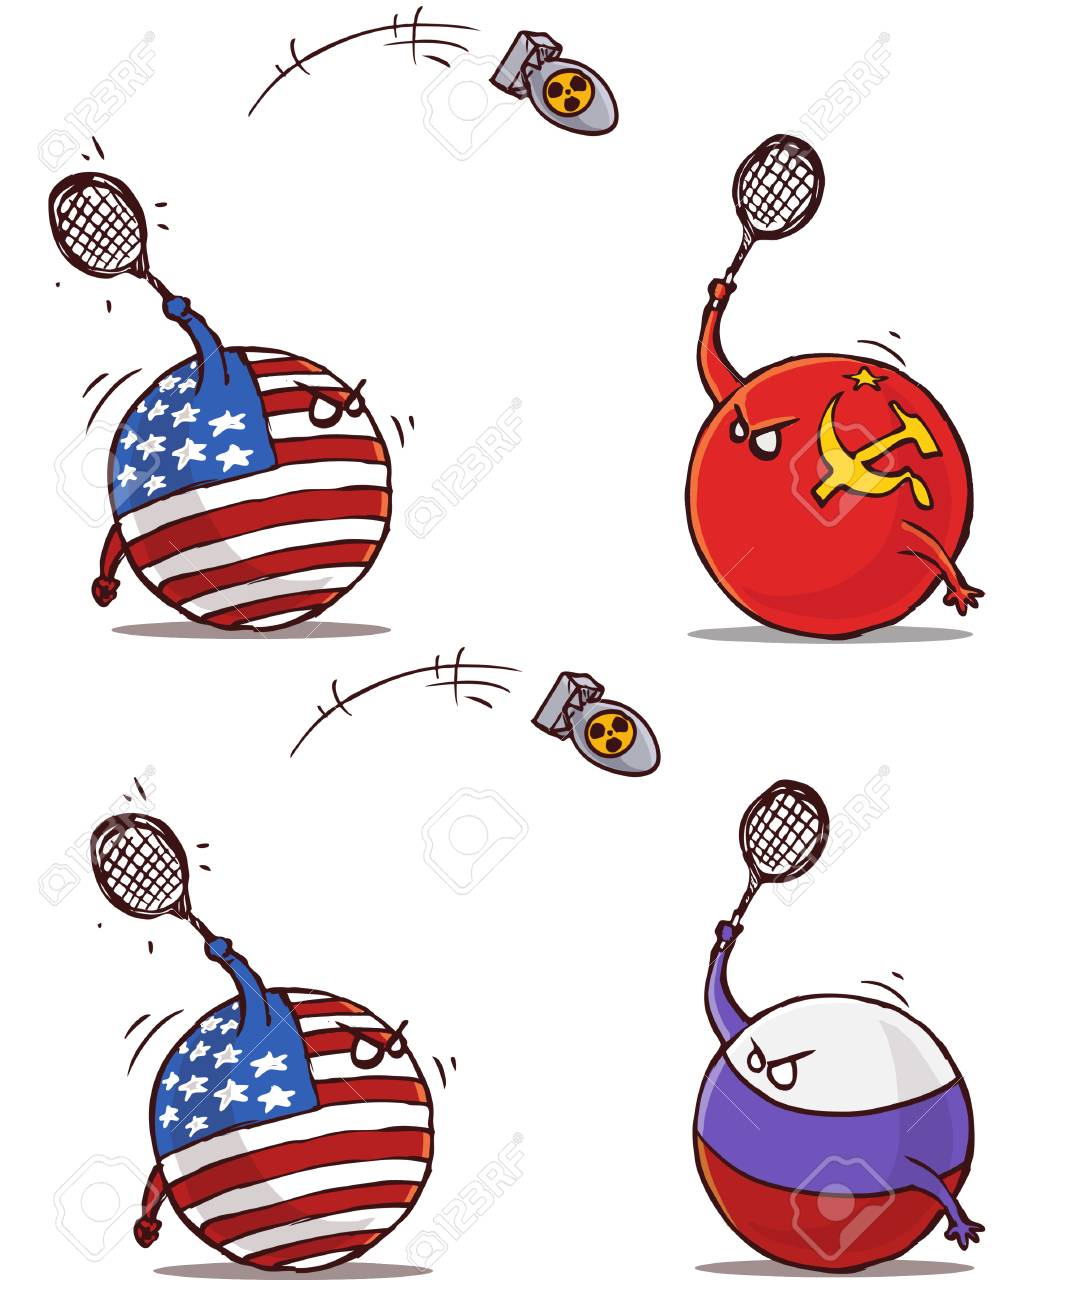 nuclear badminton ussr russia versus usa - 106880159